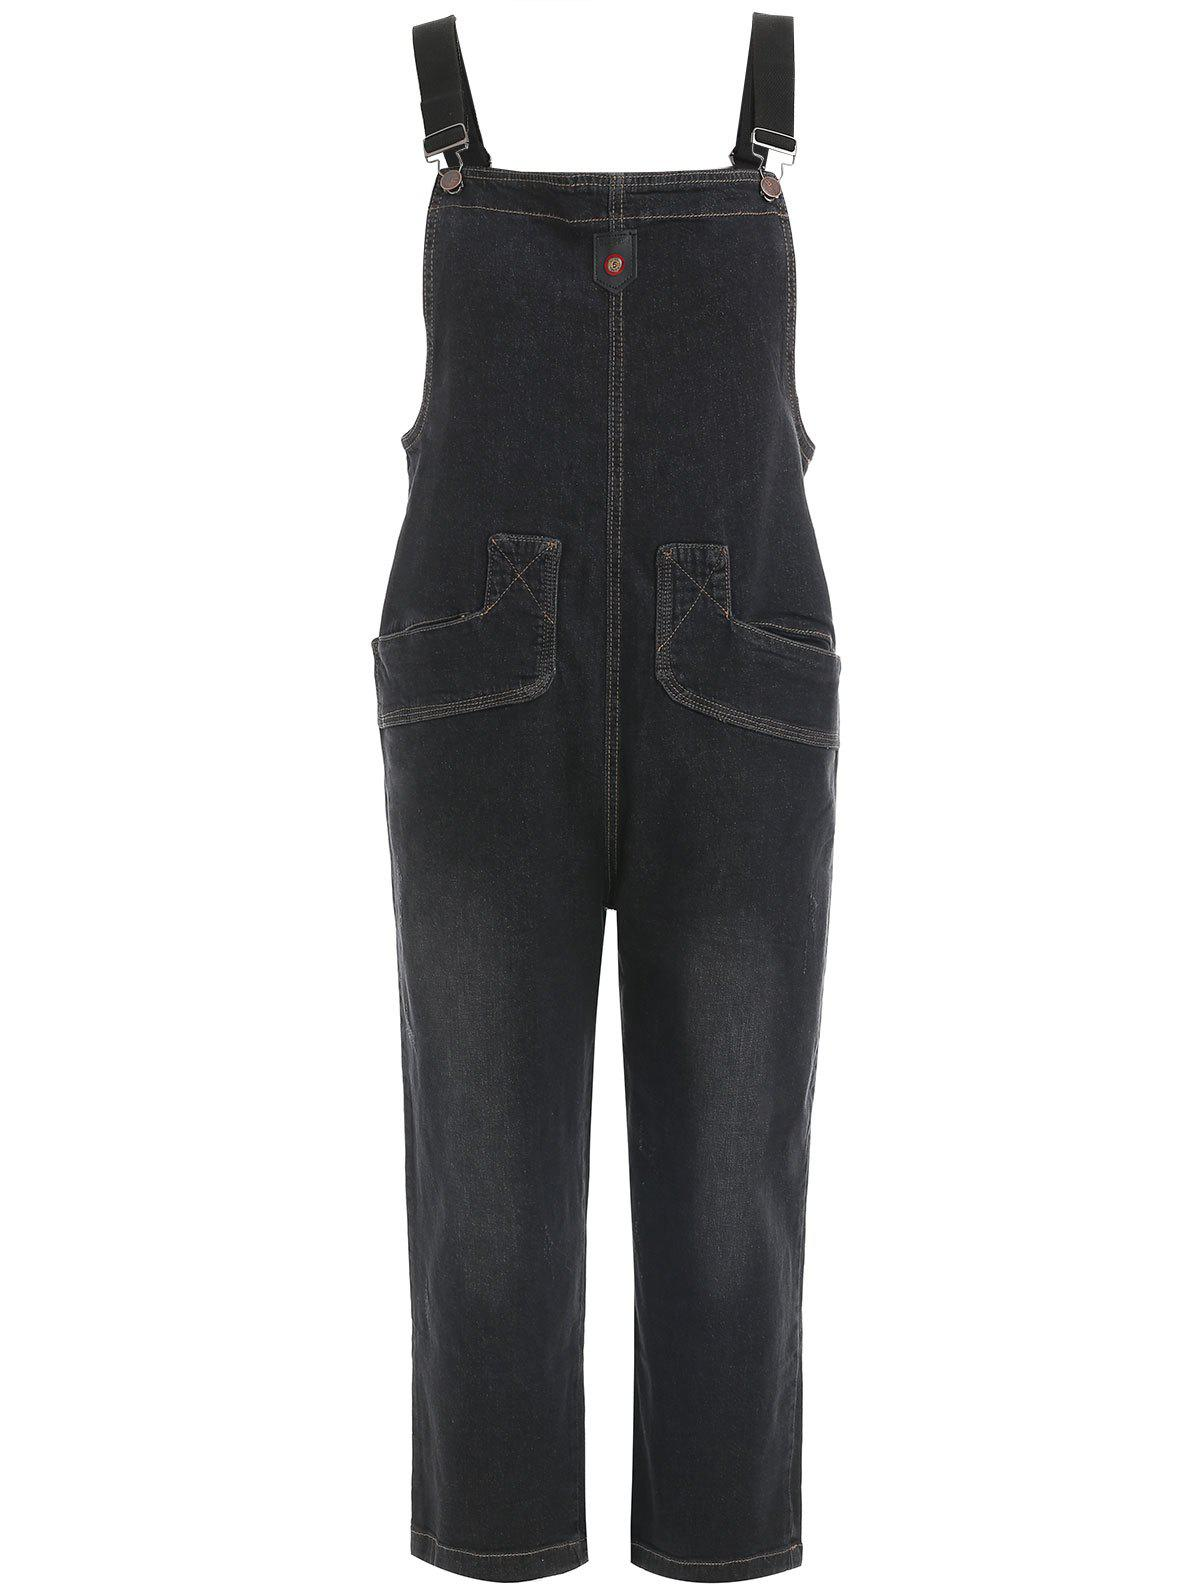 Shops Wide Leg Jean Overalls with Pockets